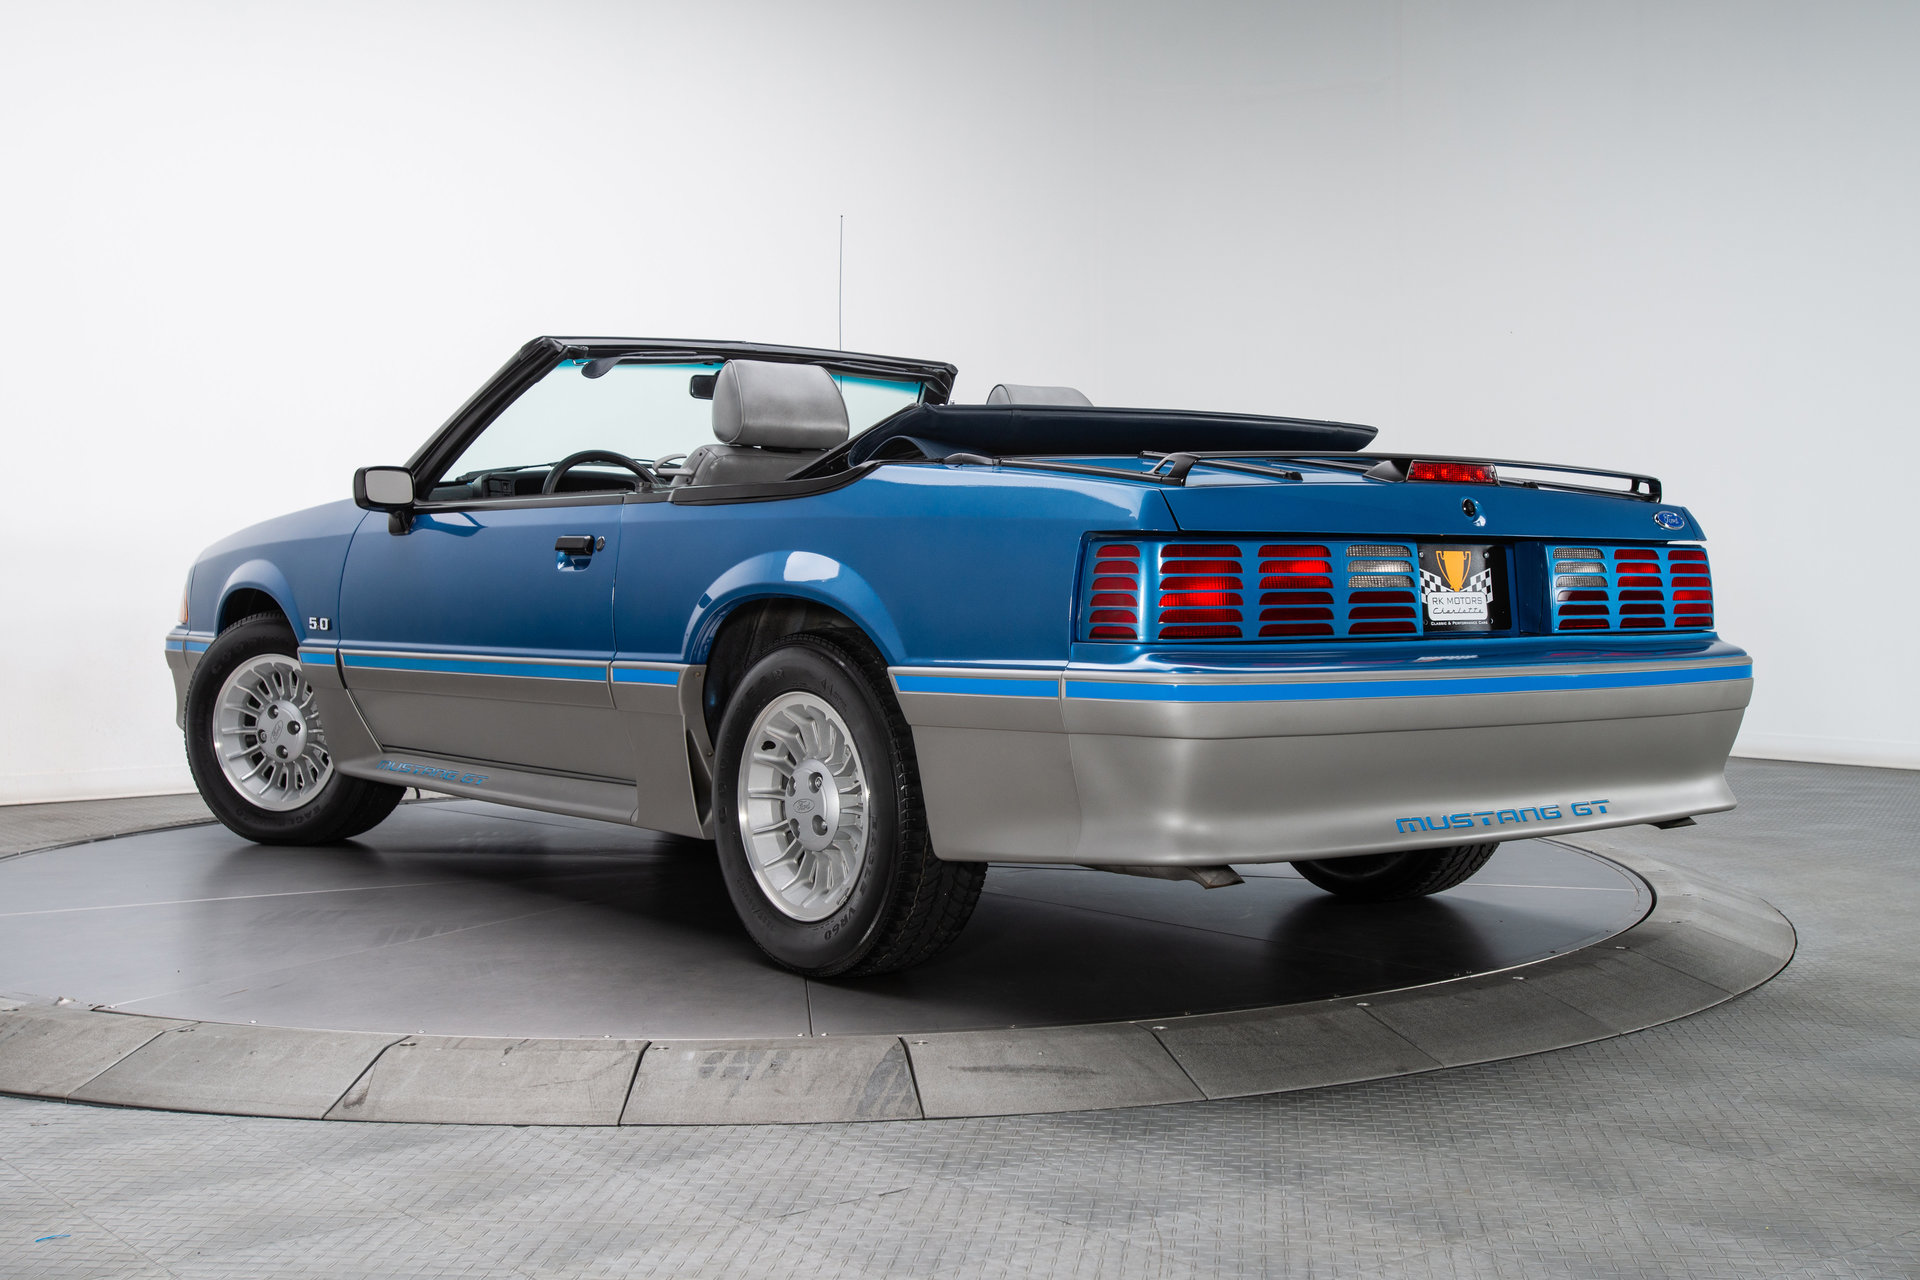 Mustang 1989 Gt For Sale